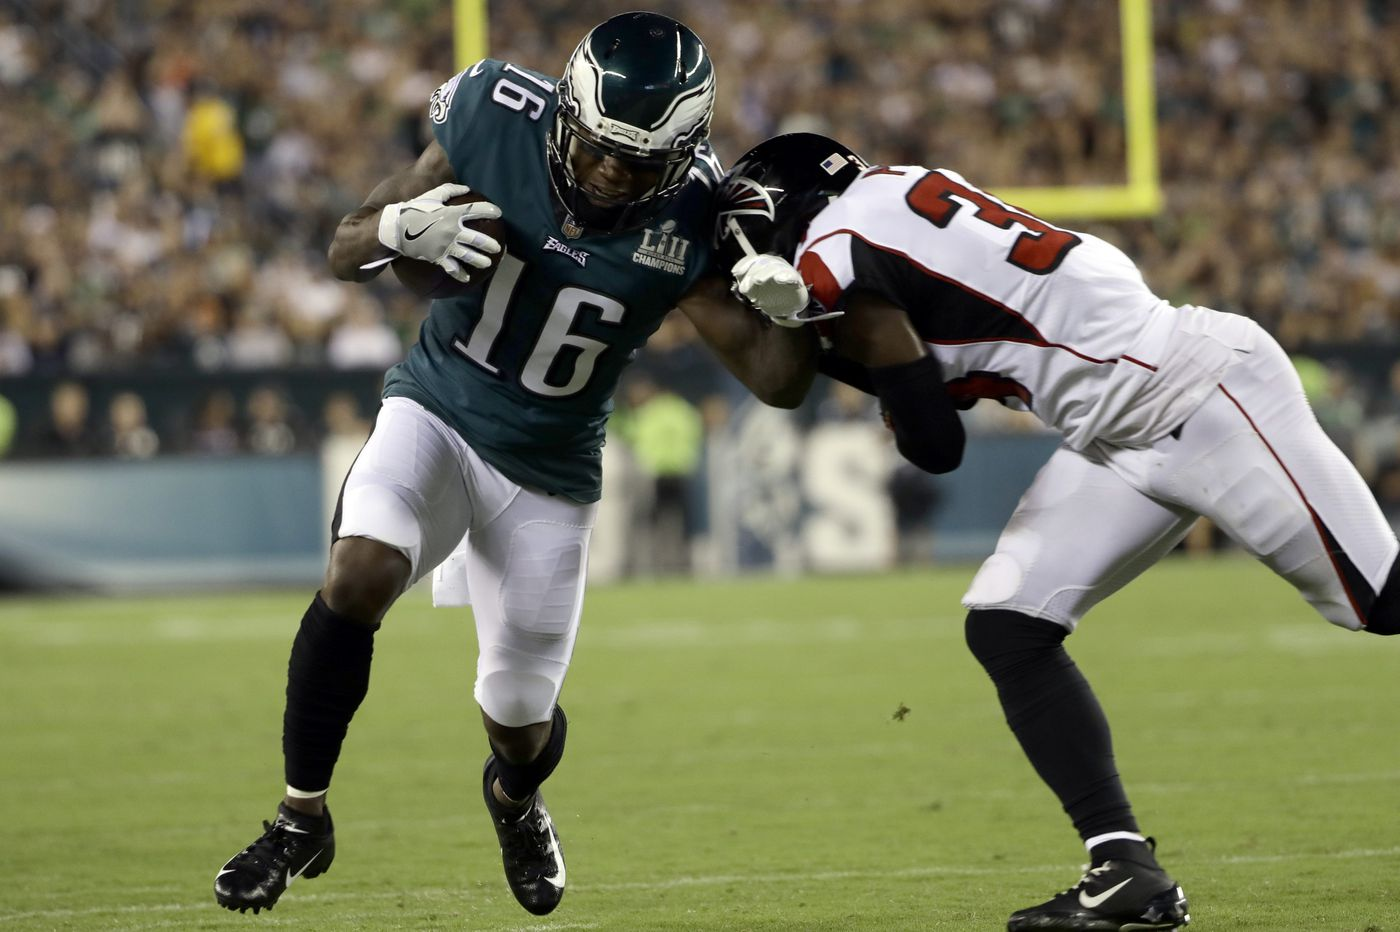 Eagles' DeAndre Carter has a catch. Now he needs to hold on. | Bob Ford